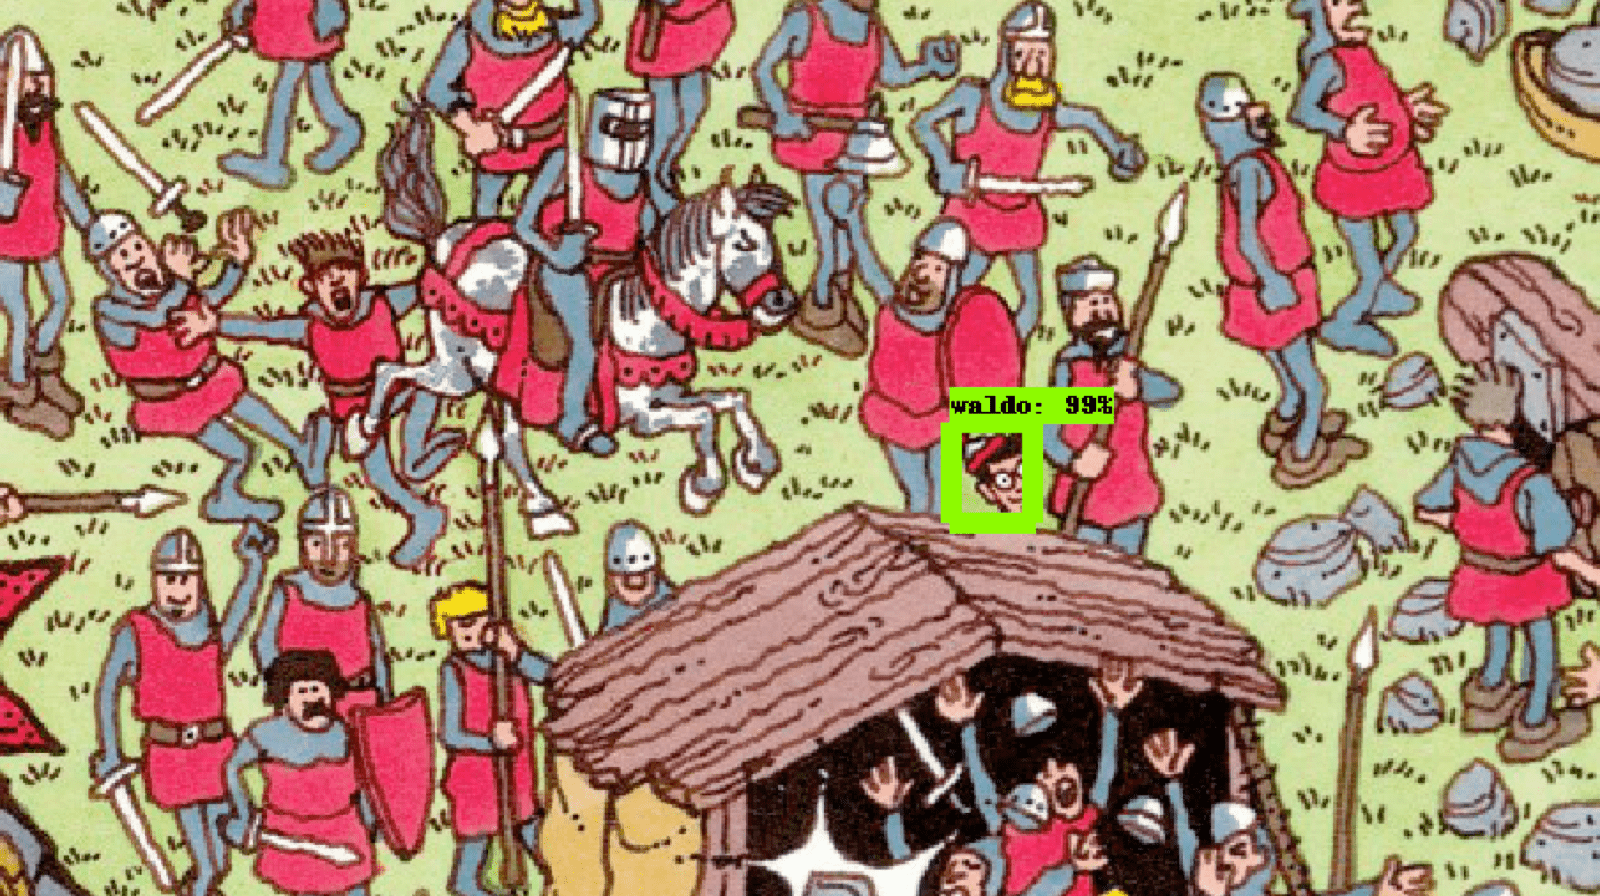 How to Find Wally with a Neural Network  Towards Data Science